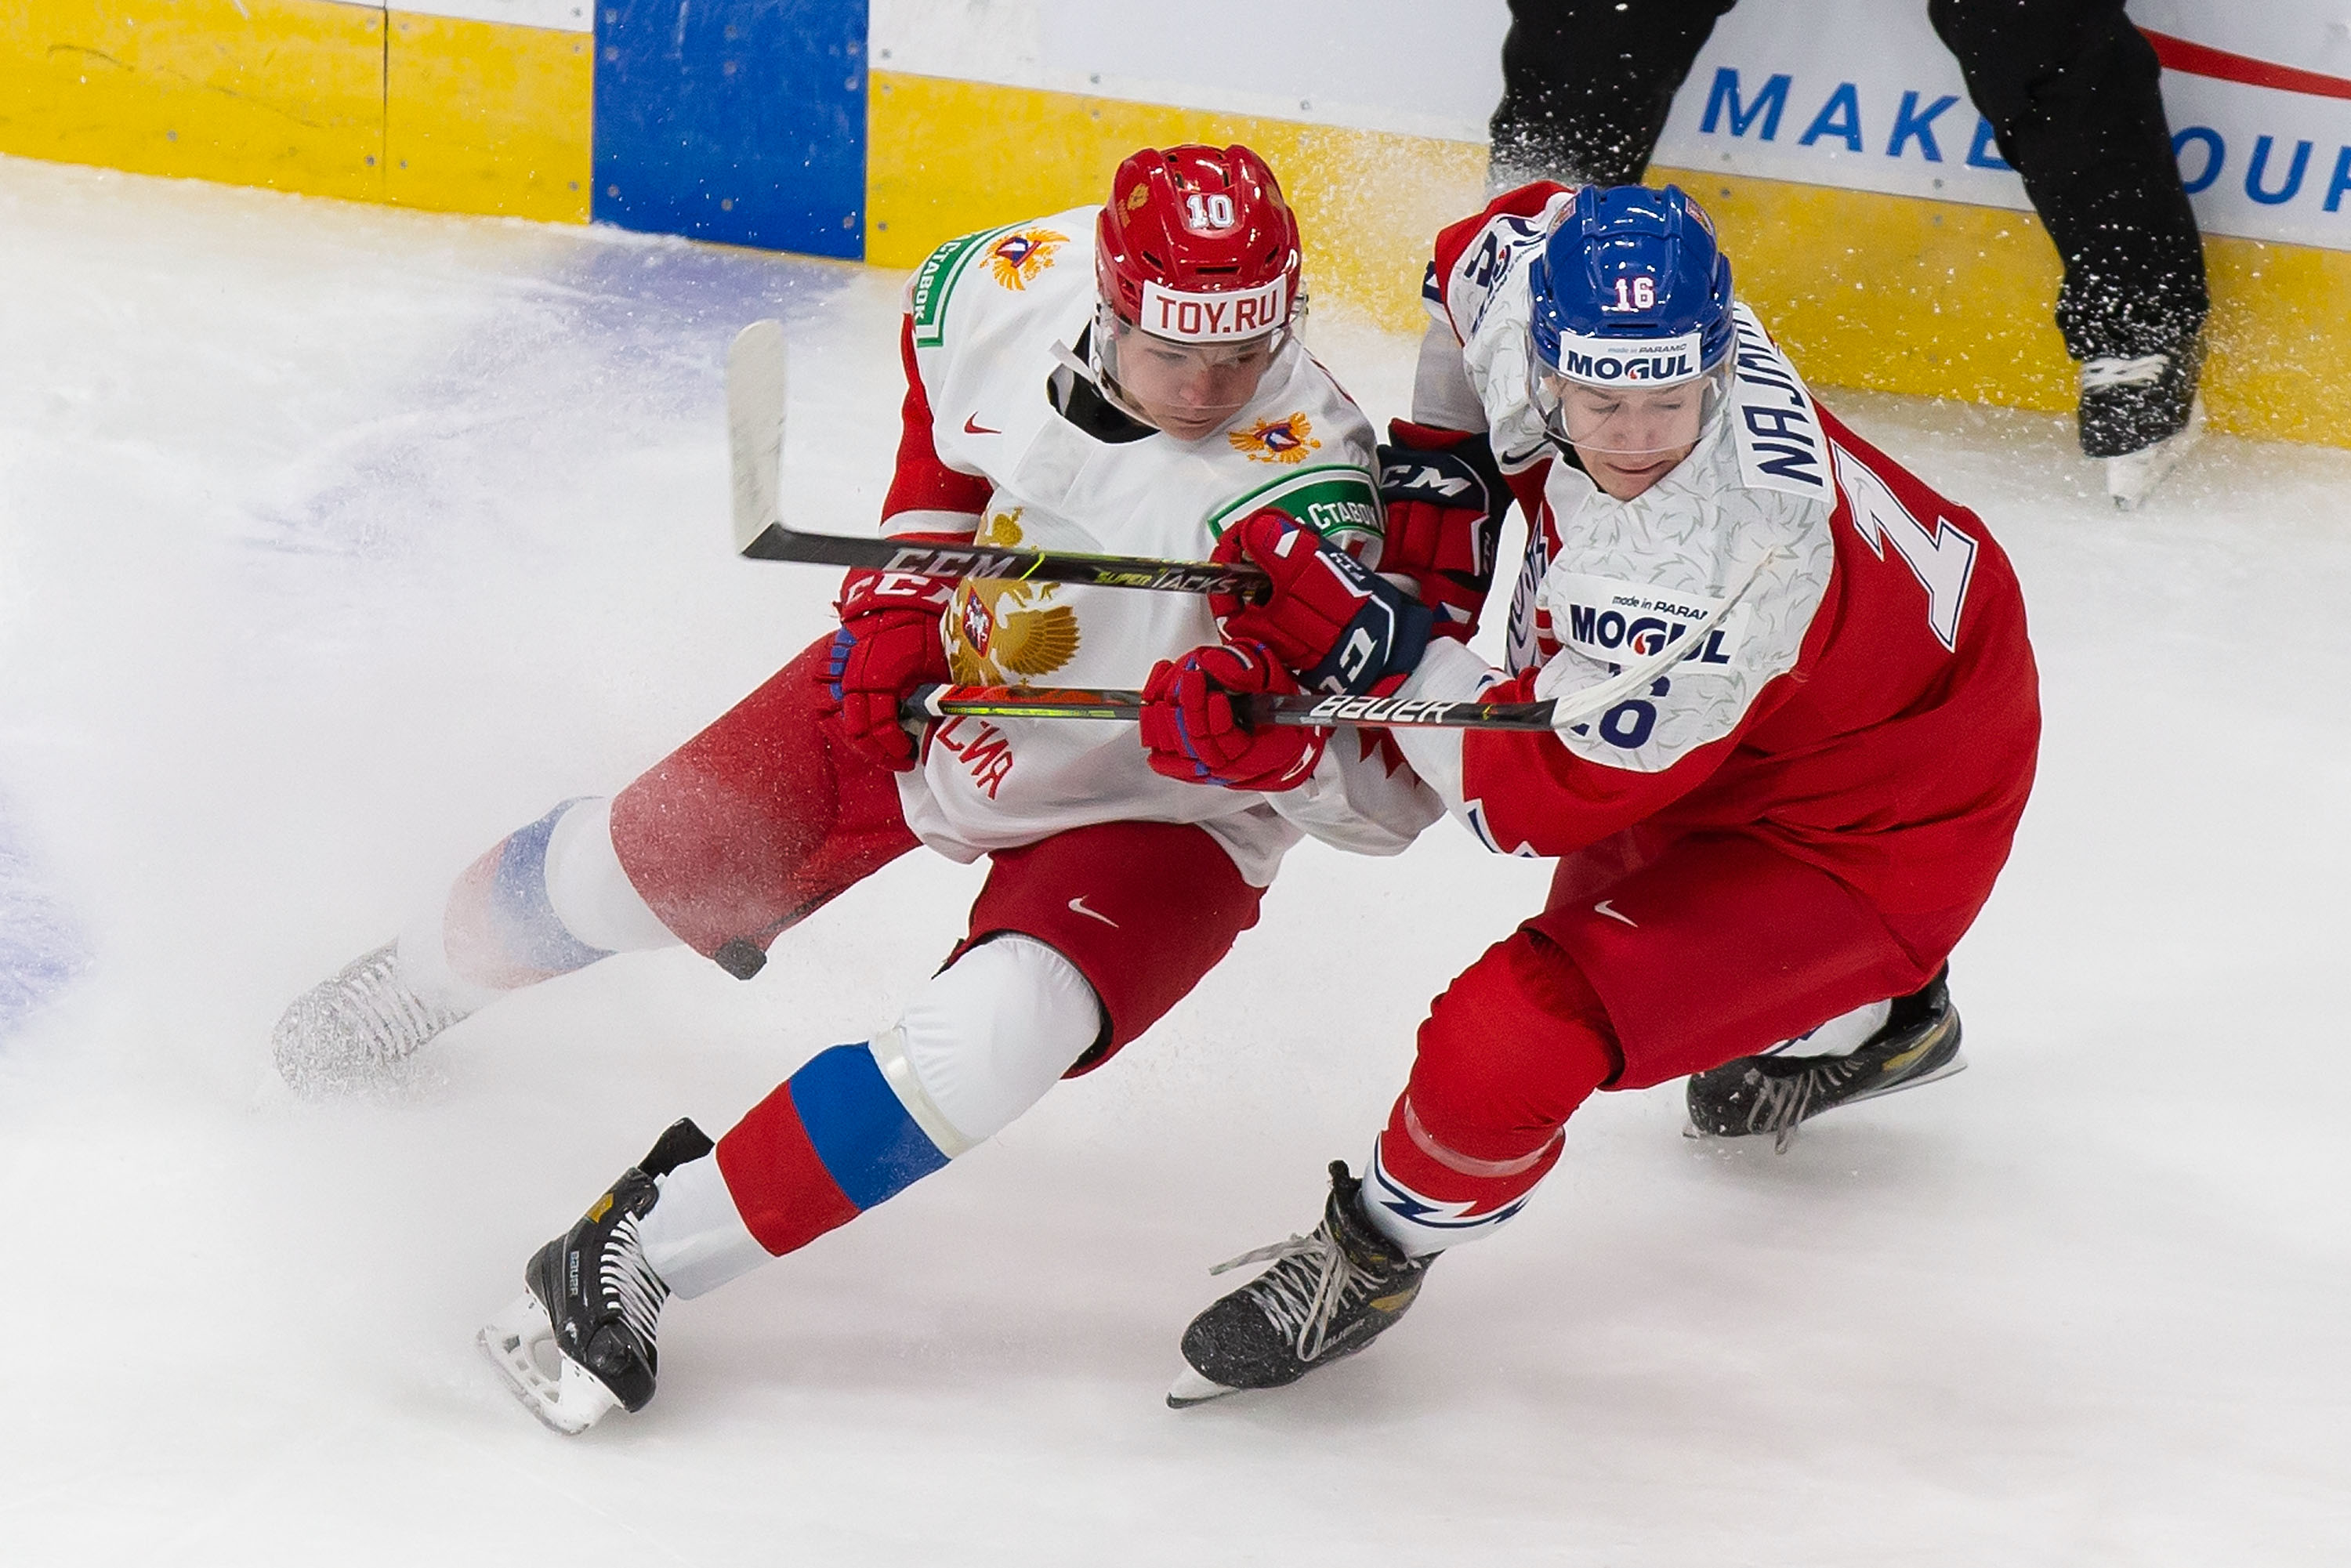 Vladislav Firstov #10 of Russia skates against Adam Najman #16 of the Czech Republic during the 2021 IIHF World Junior Championship at Rogers Place on December 27, 2020 in Edmonton, Canada.